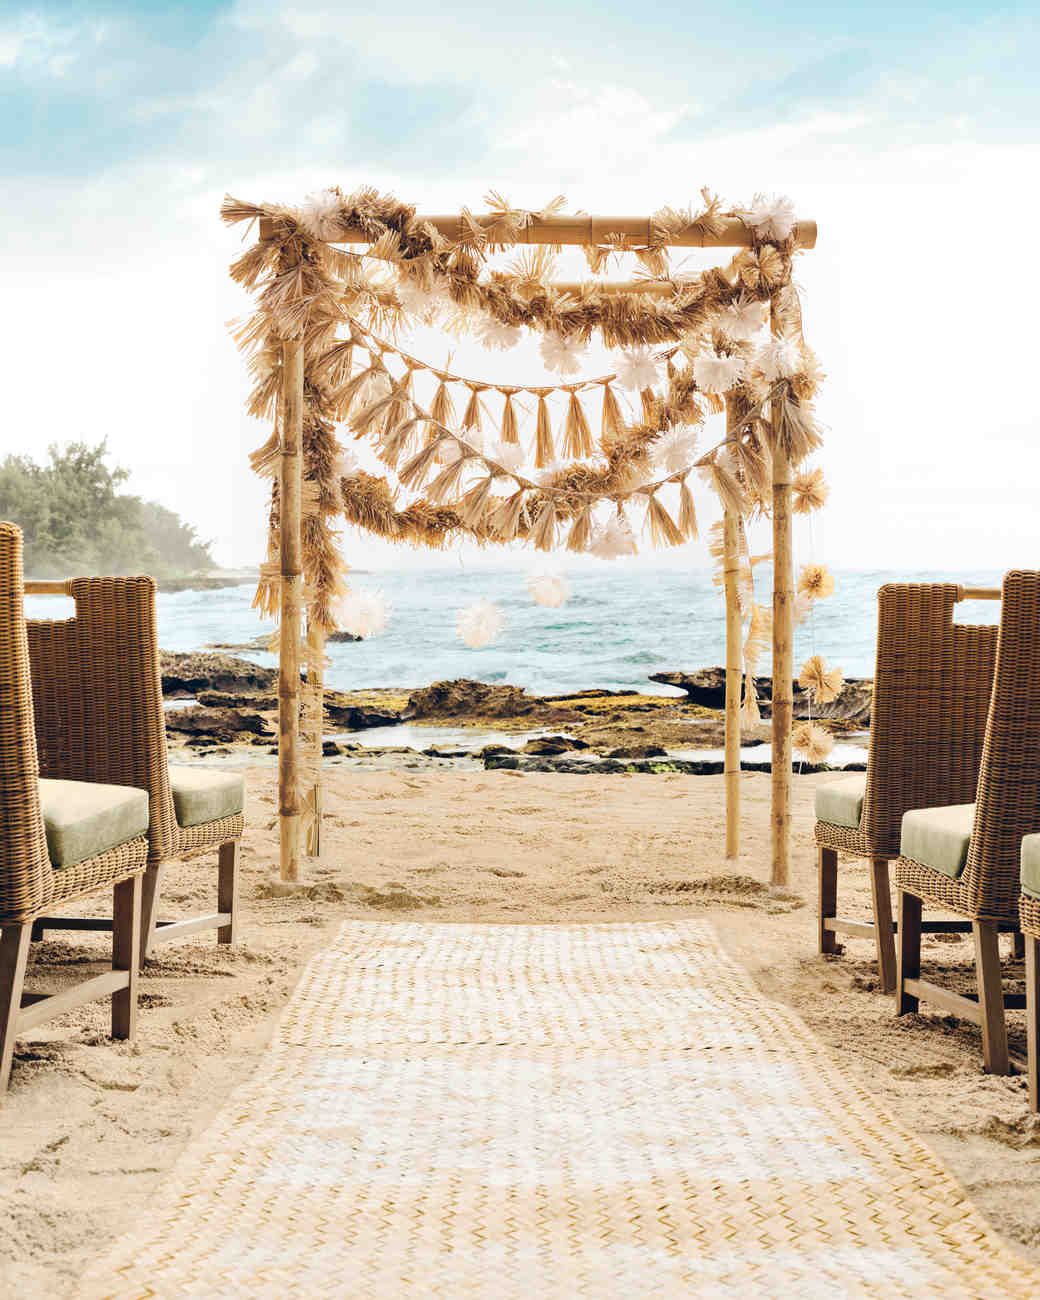 Beach Wedding Ceremony Europe: 23 Beach Wedding Ideas You Can DIY To Make A Splash At